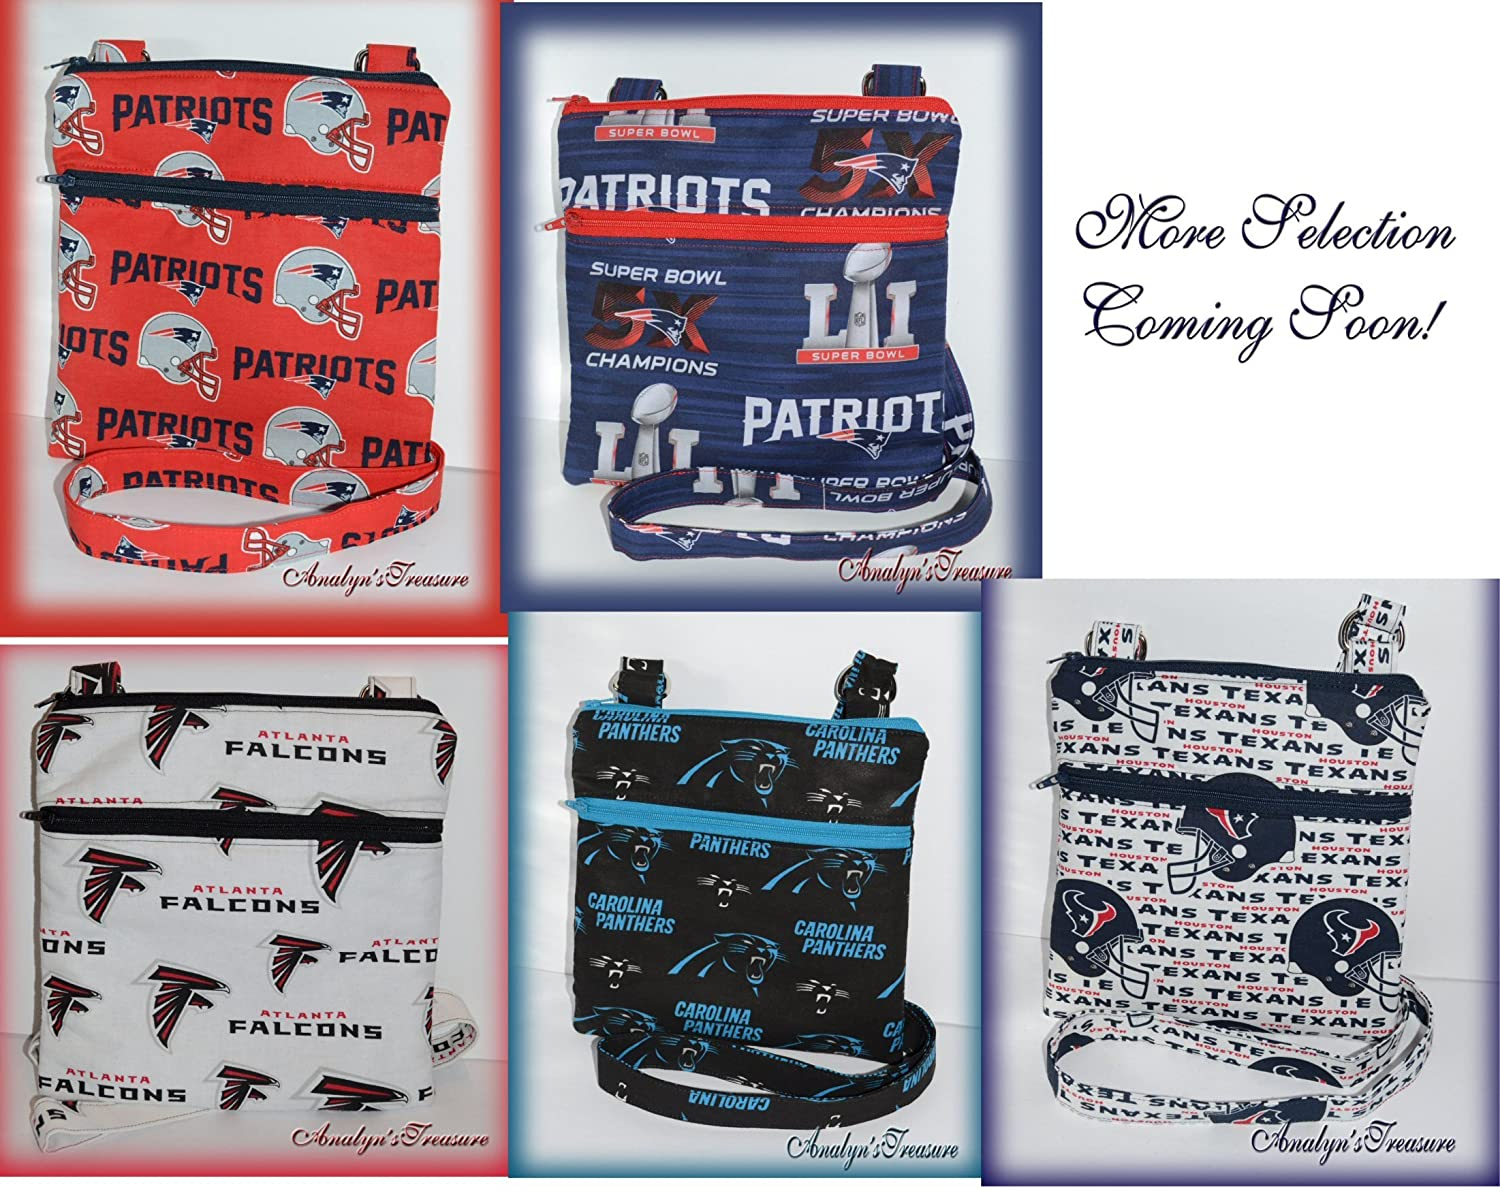 NFL Handmade Quilted Crossbody Bag, Falcons, Patriots, Panthers, Dallas, Cowboys, Quilted Bag, Travel Bag, Passport Bag, Choose Other Theme